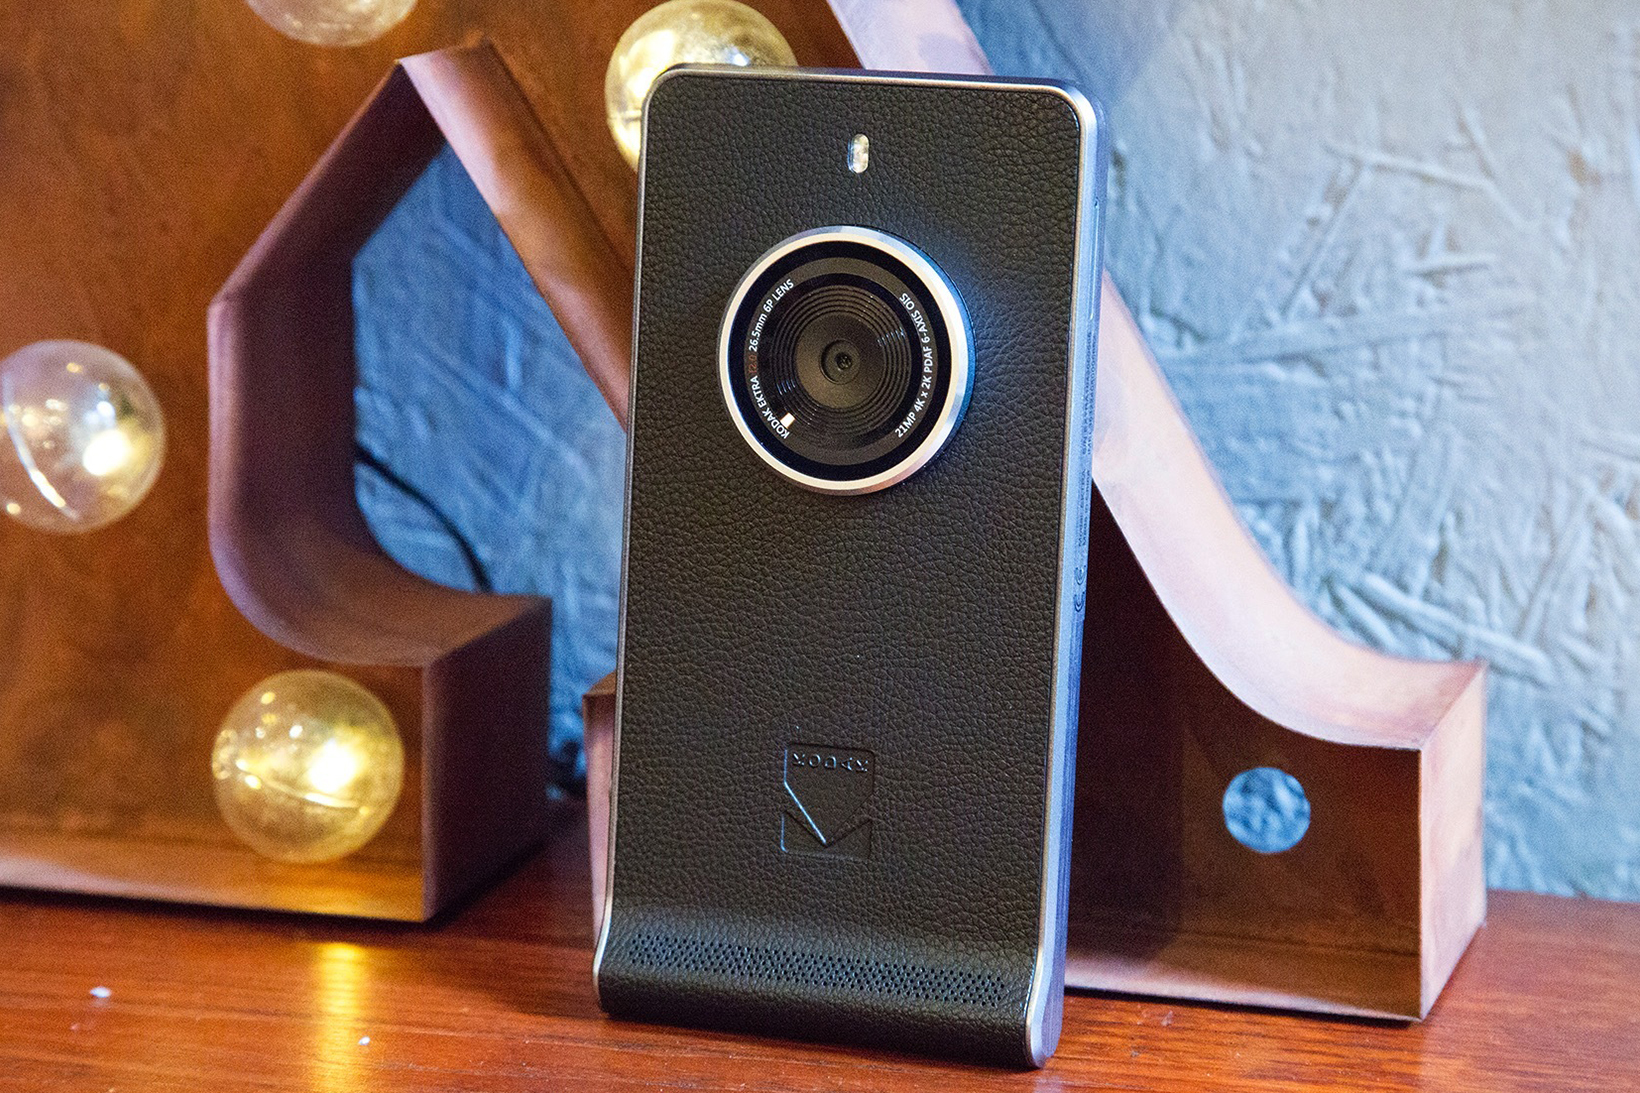 Kodak Creates the Ektra Smartphone for Budding and Seasoned Phone Photographers